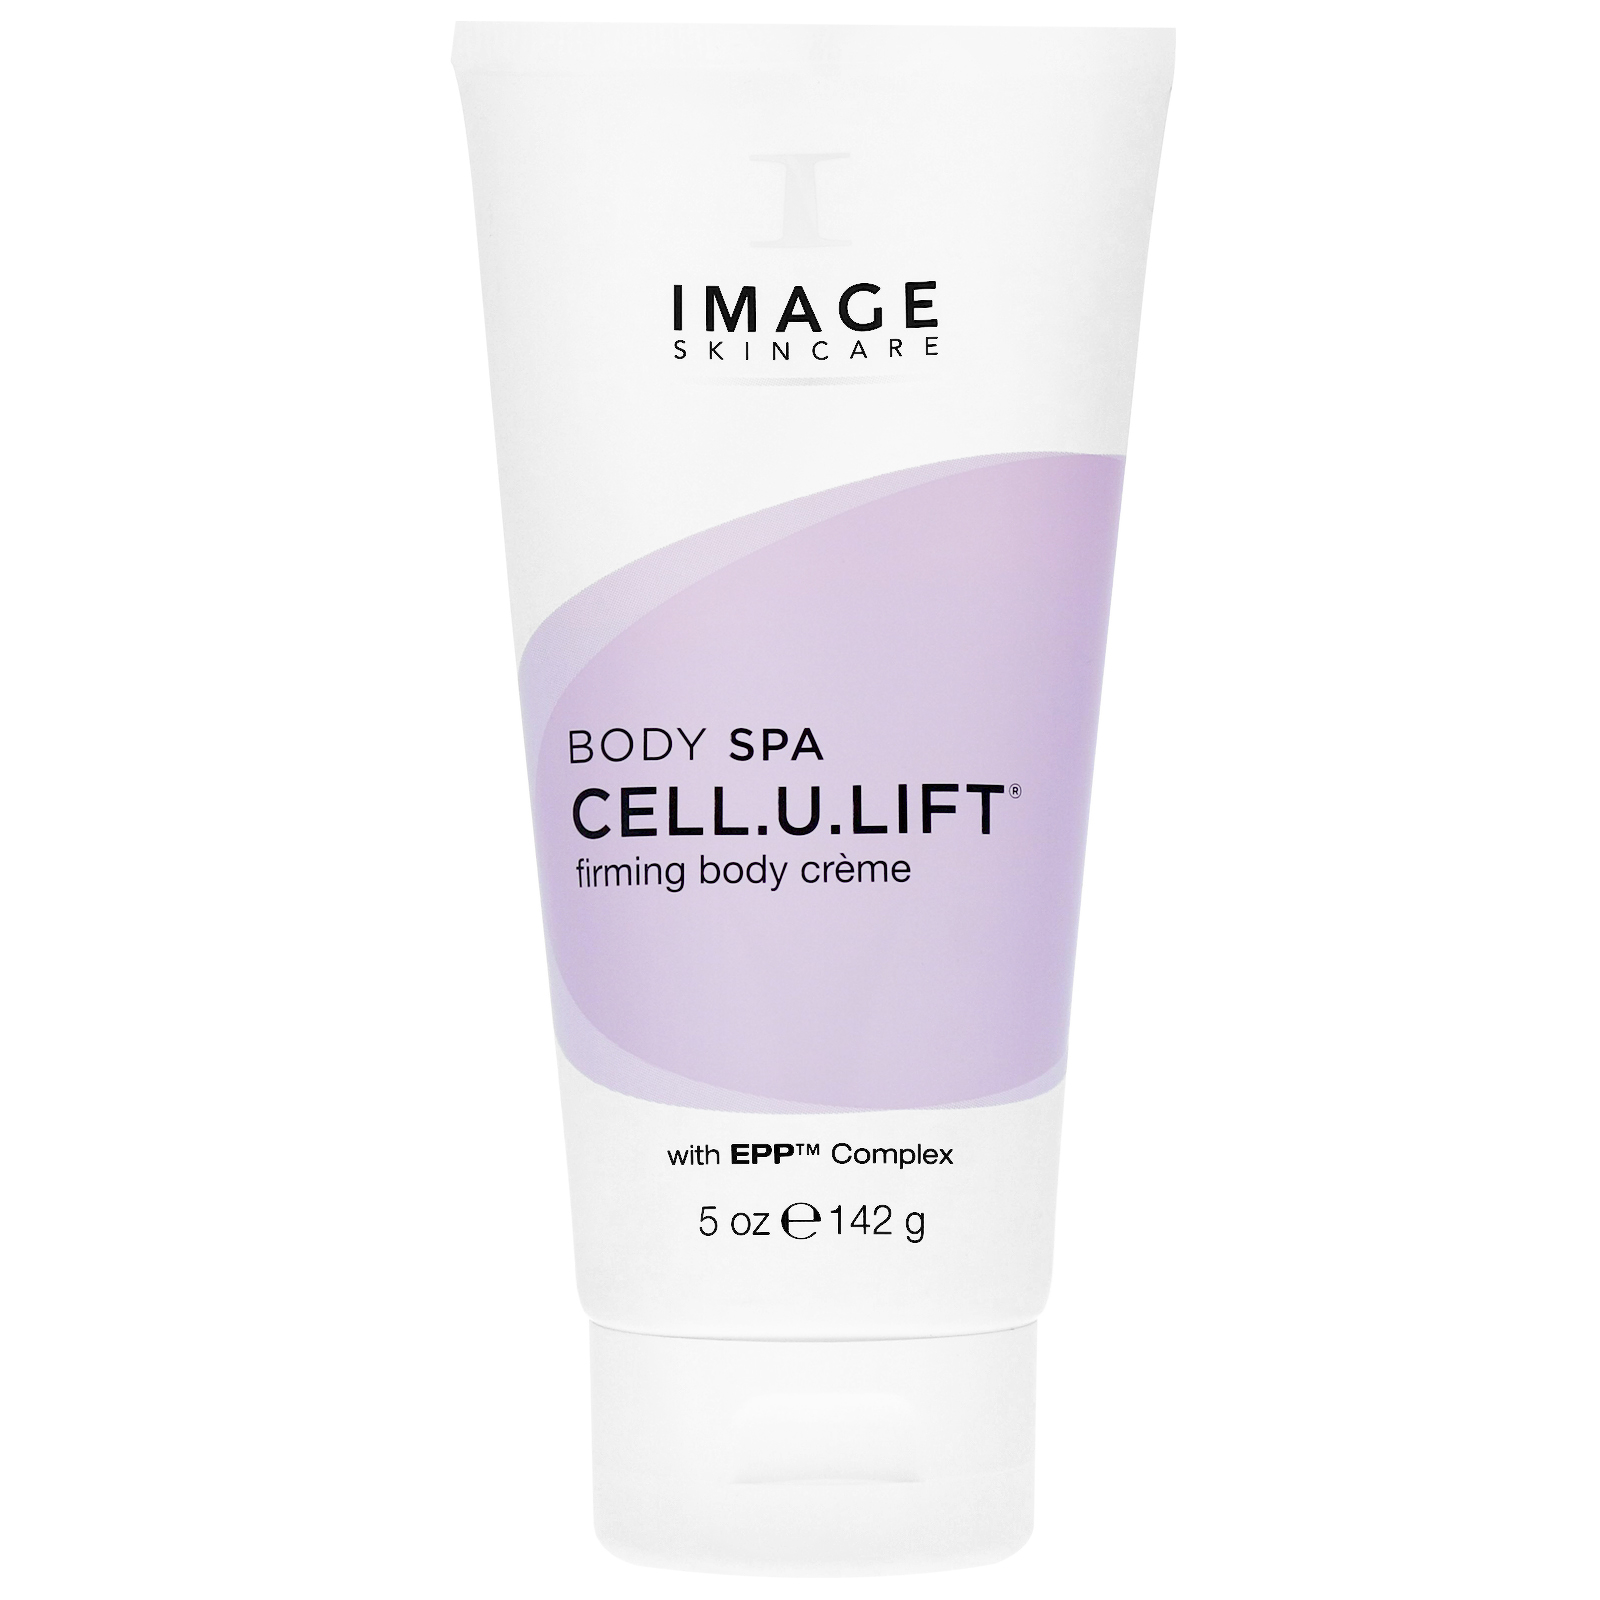 IMAGE Skincare Body Spa Cell.U.Lift Firming Body Creme 142g / 5 oz.